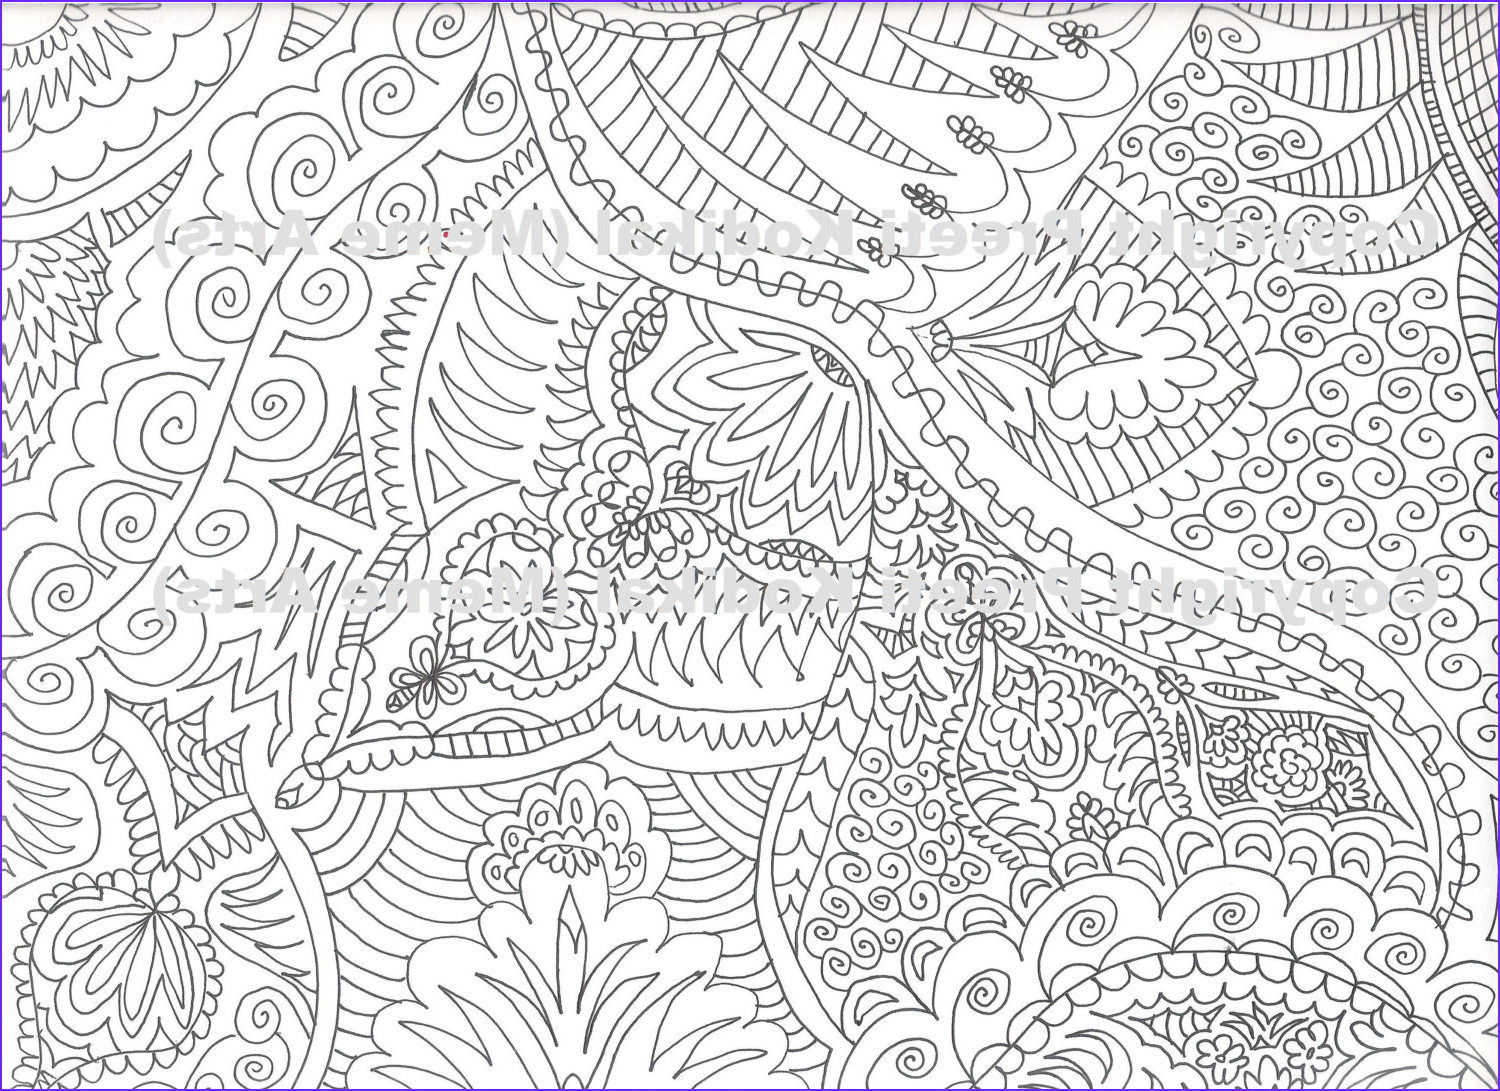 Coloring Pages Designs Inspirational Photos Pen Illustration Printable Coloring Page Zentangle Inspired